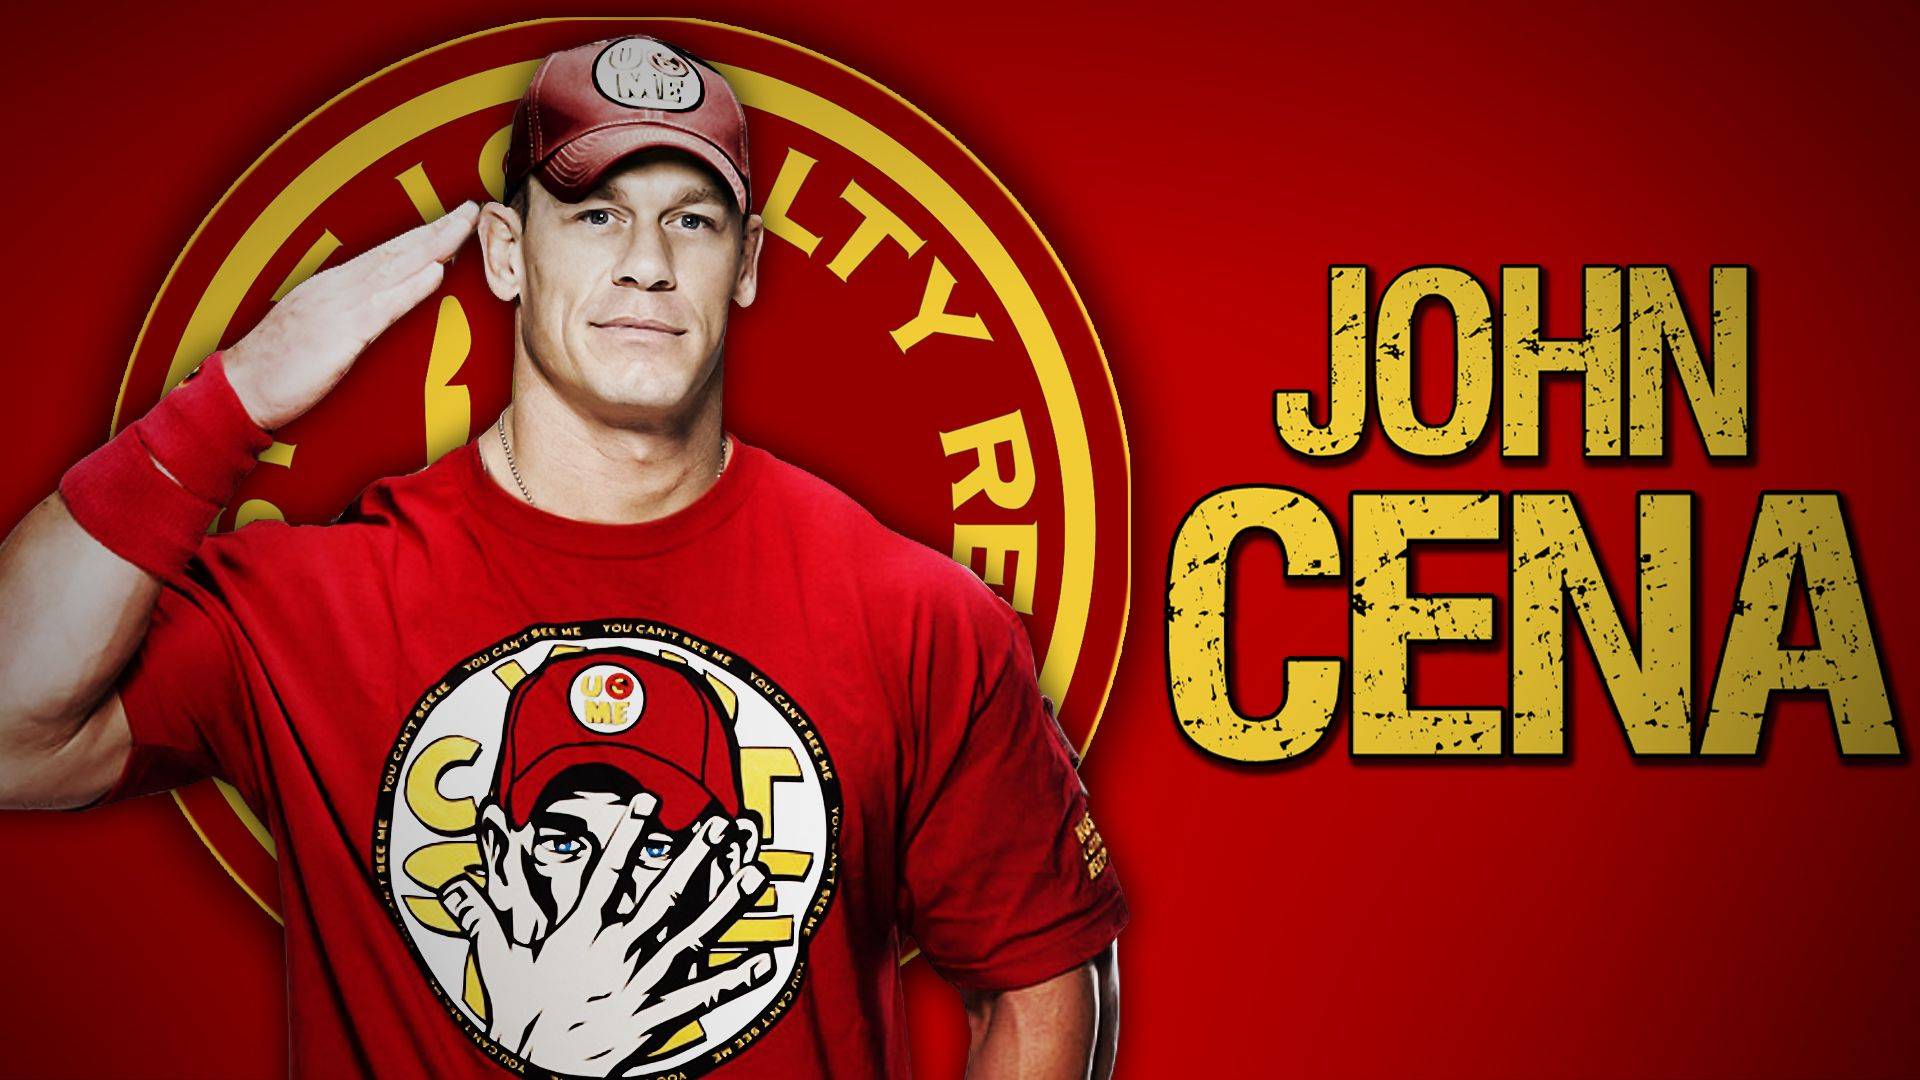 John Cena HD Wallpaper And Images 2015 6   Hd Wallpapers 2015 1920x1080